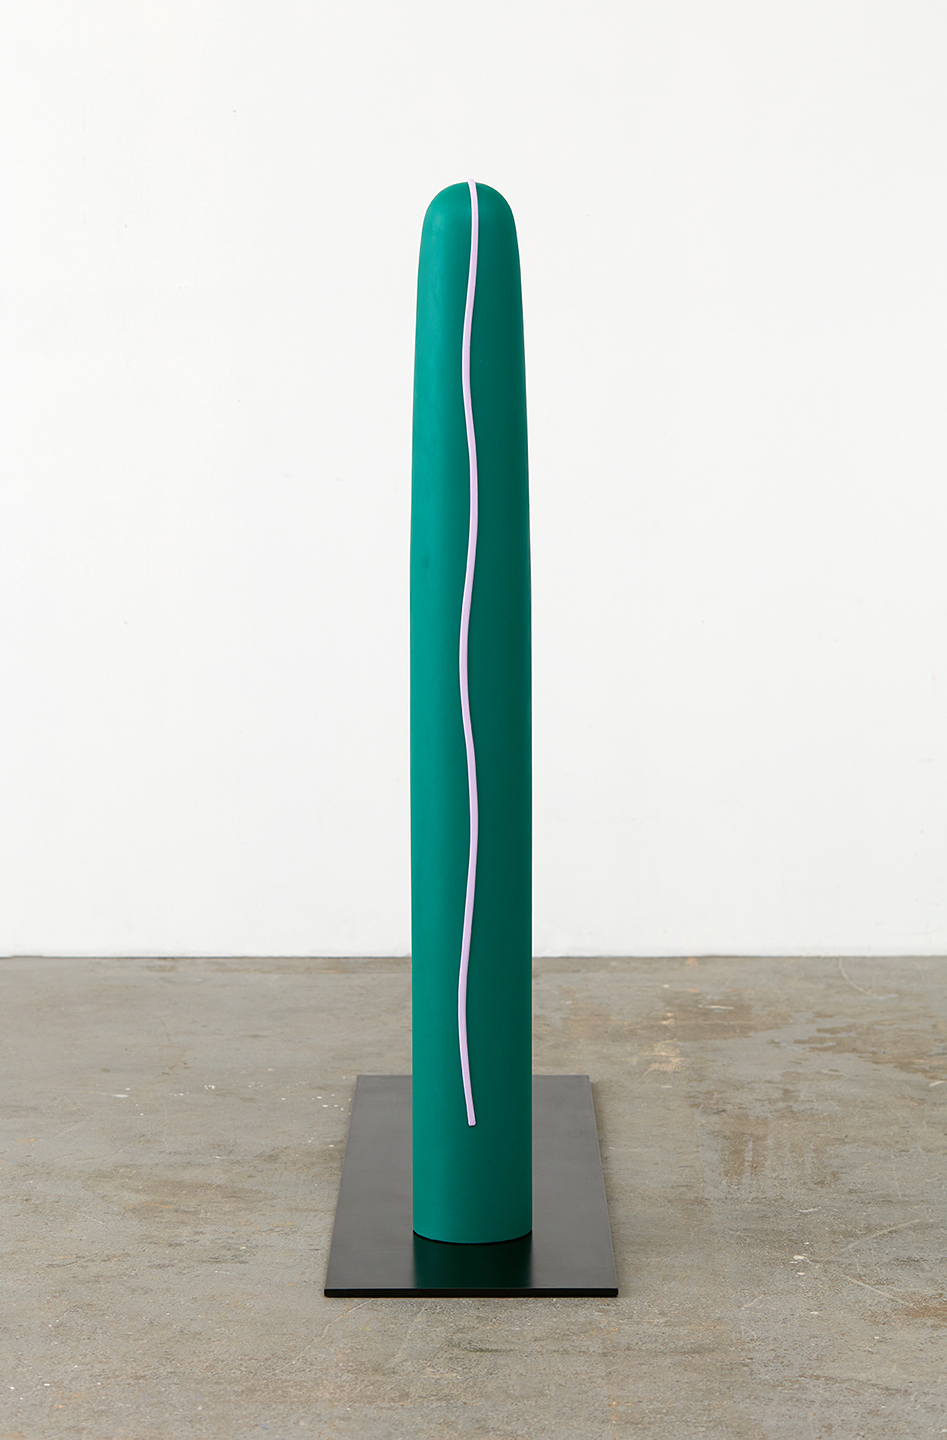 Lisa Williamson  Climber, Elegans  2015 Acrylic on wood and steel base with black acid and wax finish 52 ⅛h x 6w x 6d in; Base 48h x 14w x ⅜d in LW173